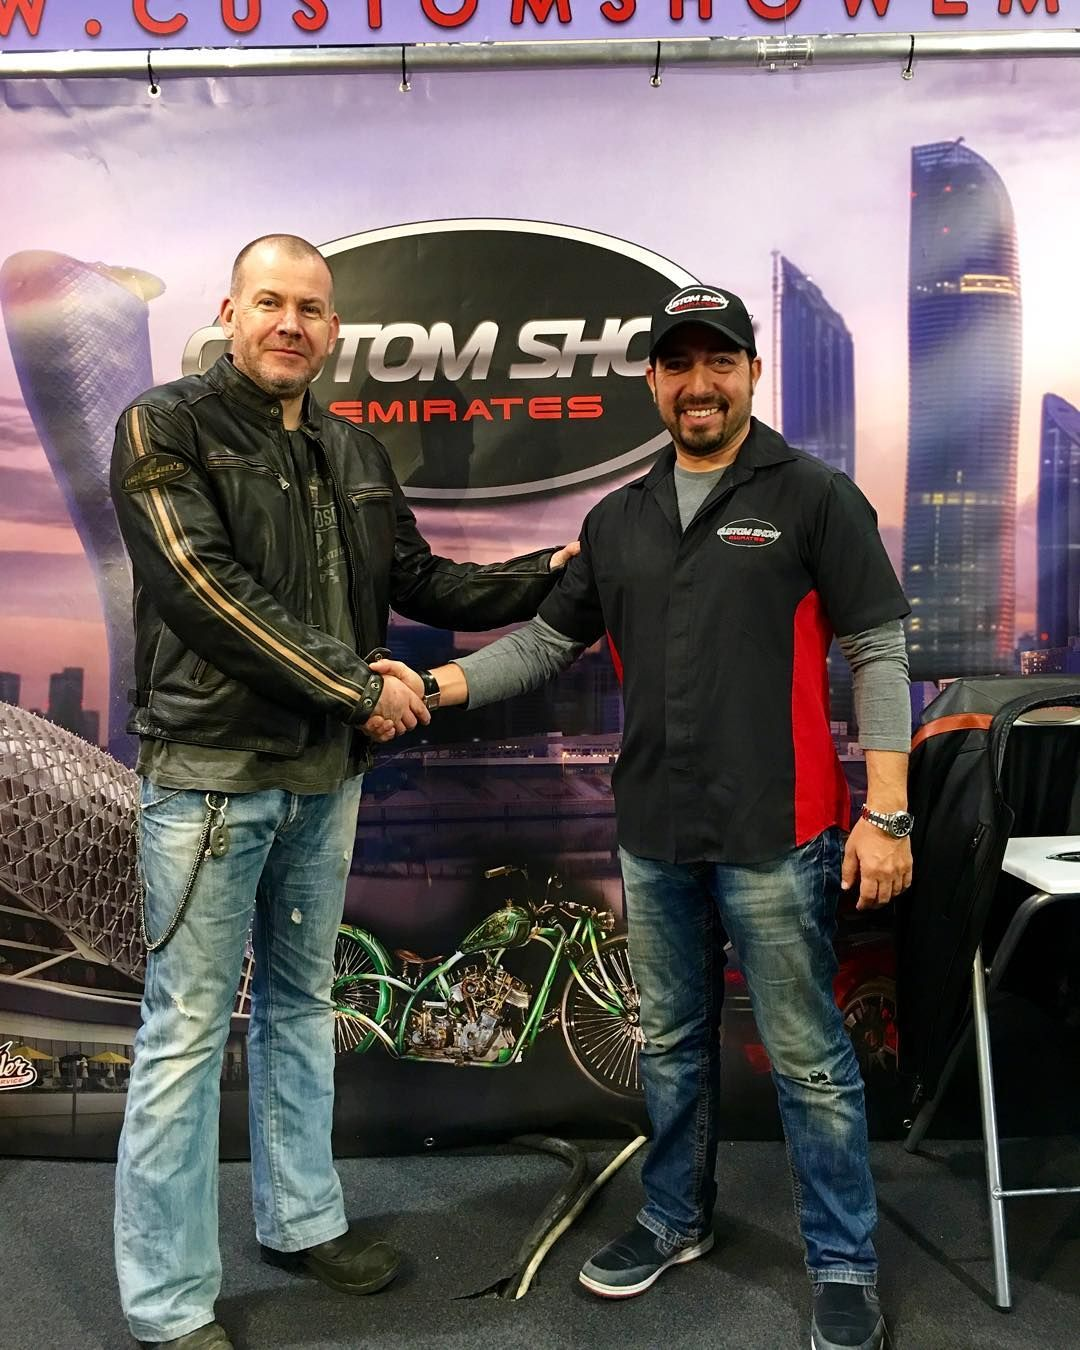 Rocket Bobs have been invited to take part in the Biker Build Off at the 2017 Custom Show Emirates #emirates #customshowemirates #rocketbobs #bikerbuildoff